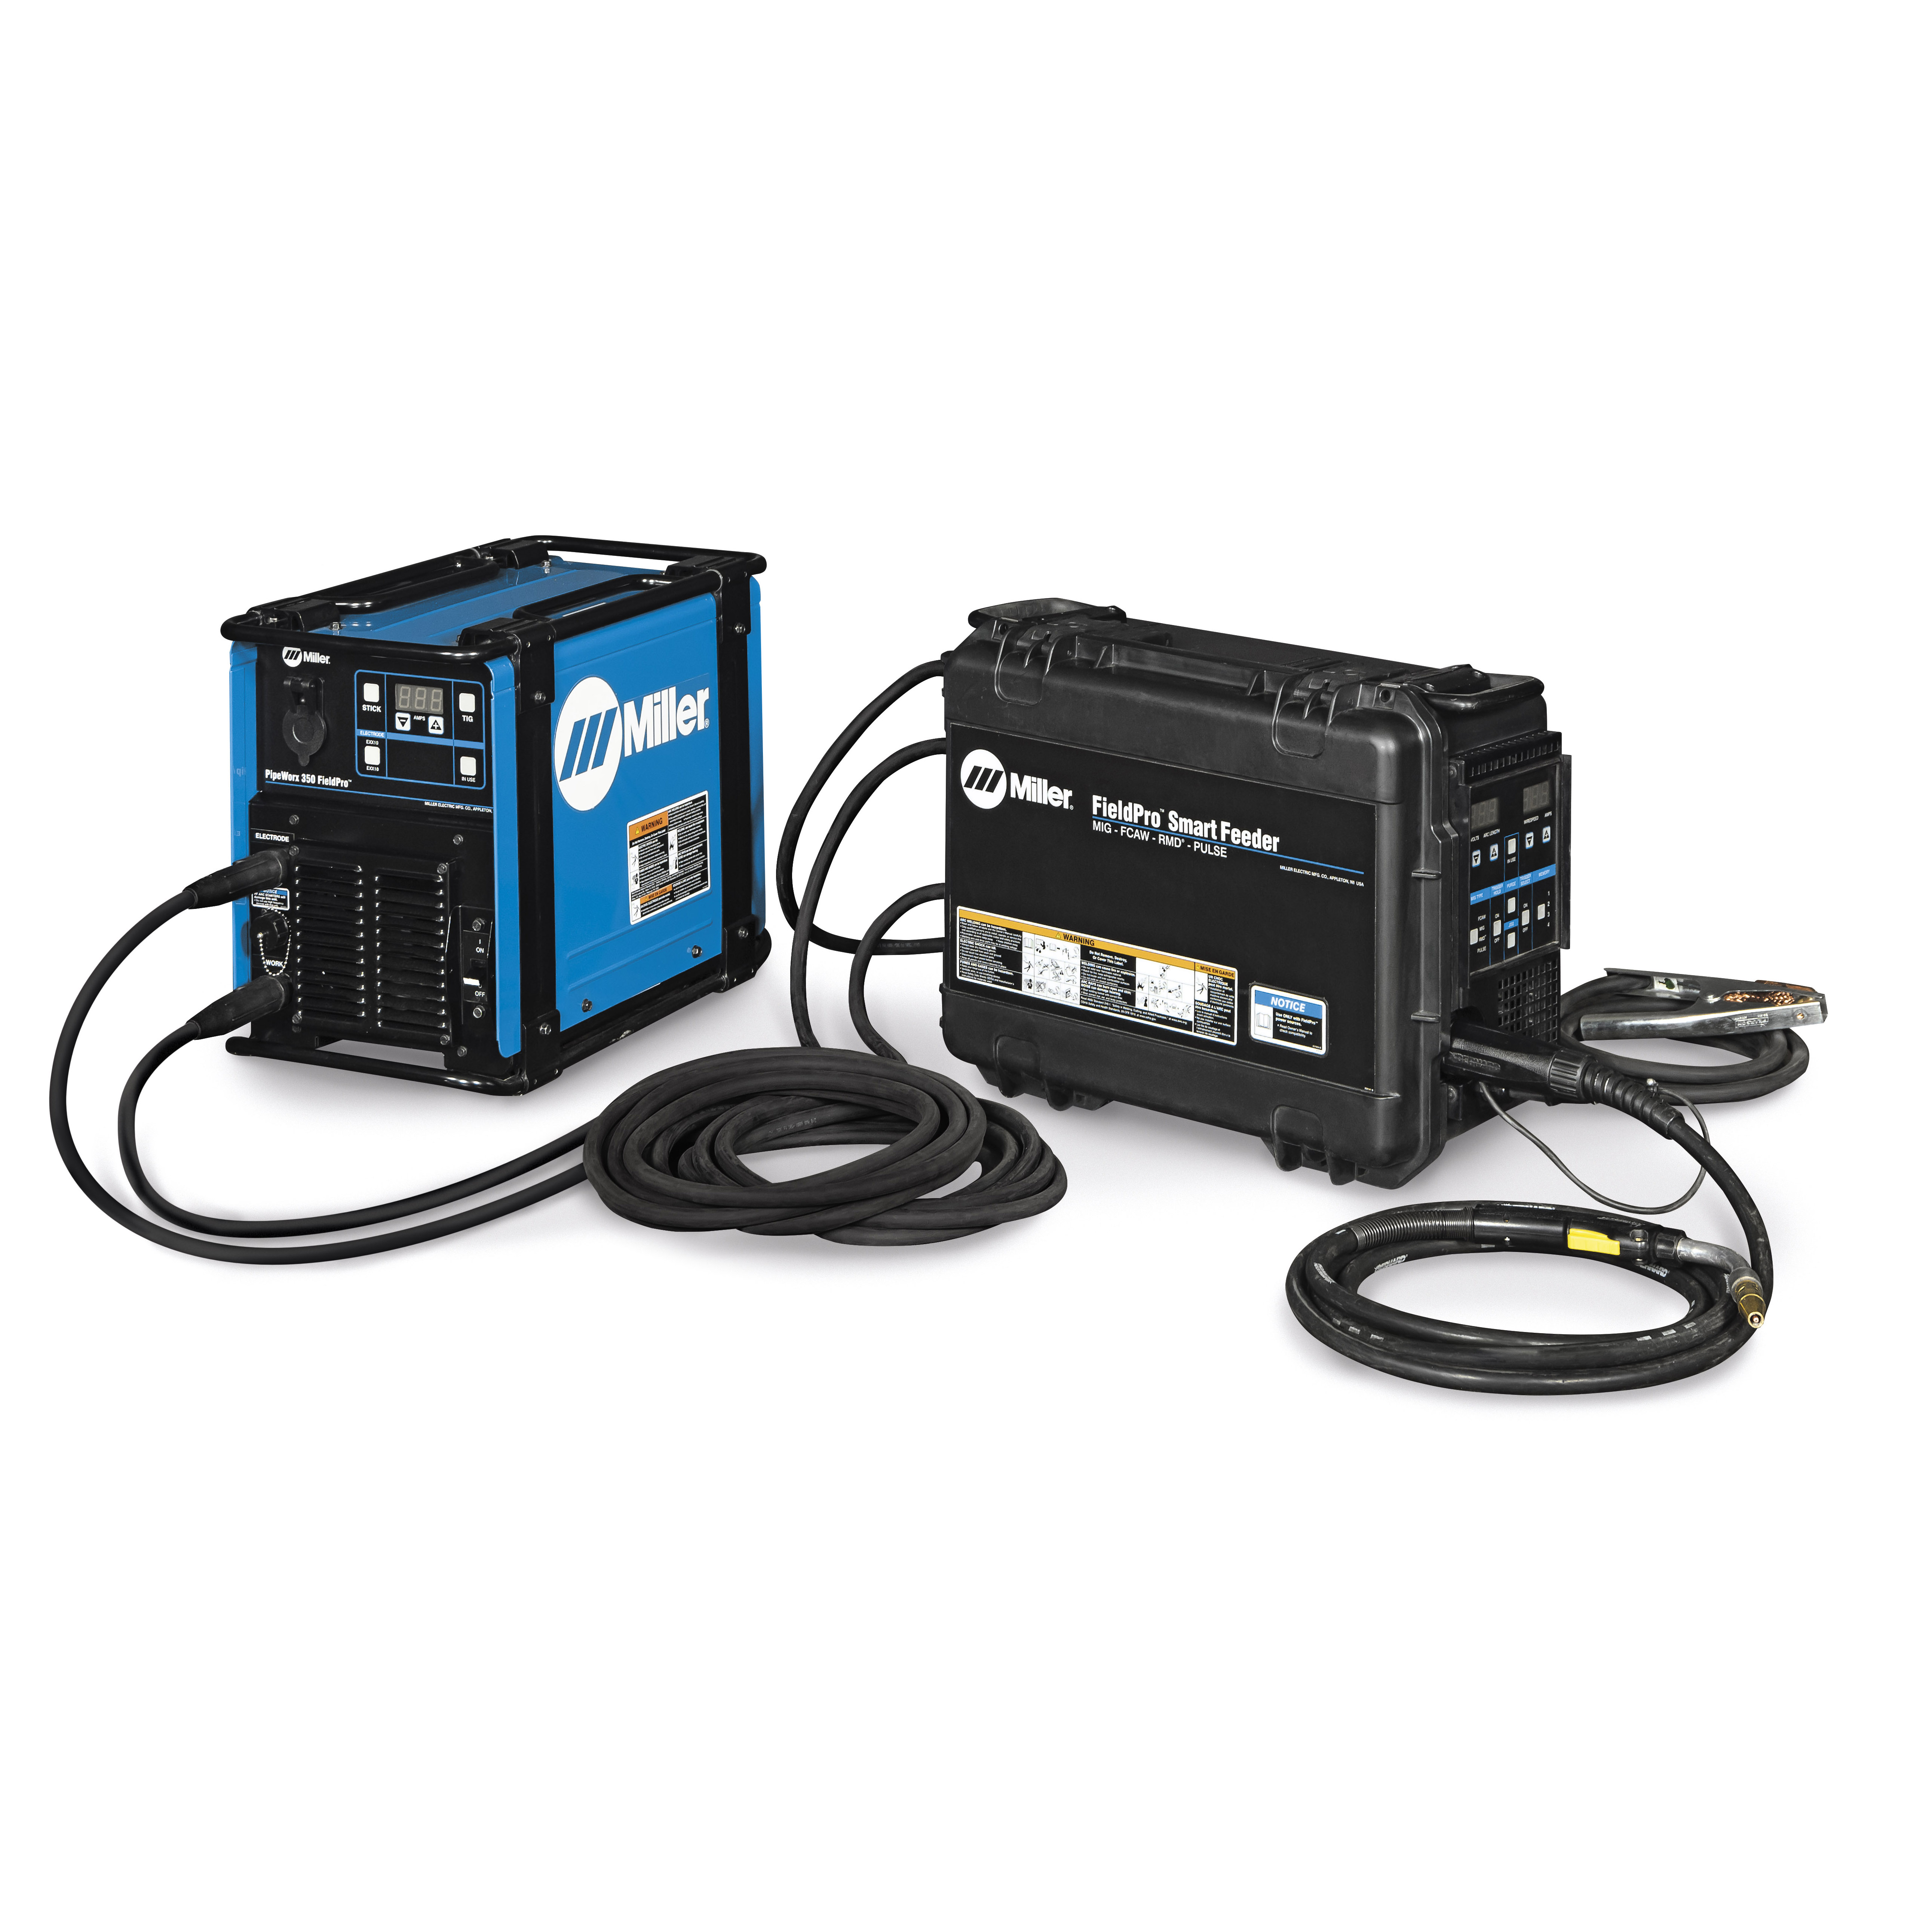 Miller Welding Equipment, PipWorx 350 FieldPro RMD/Pulse Welding ...